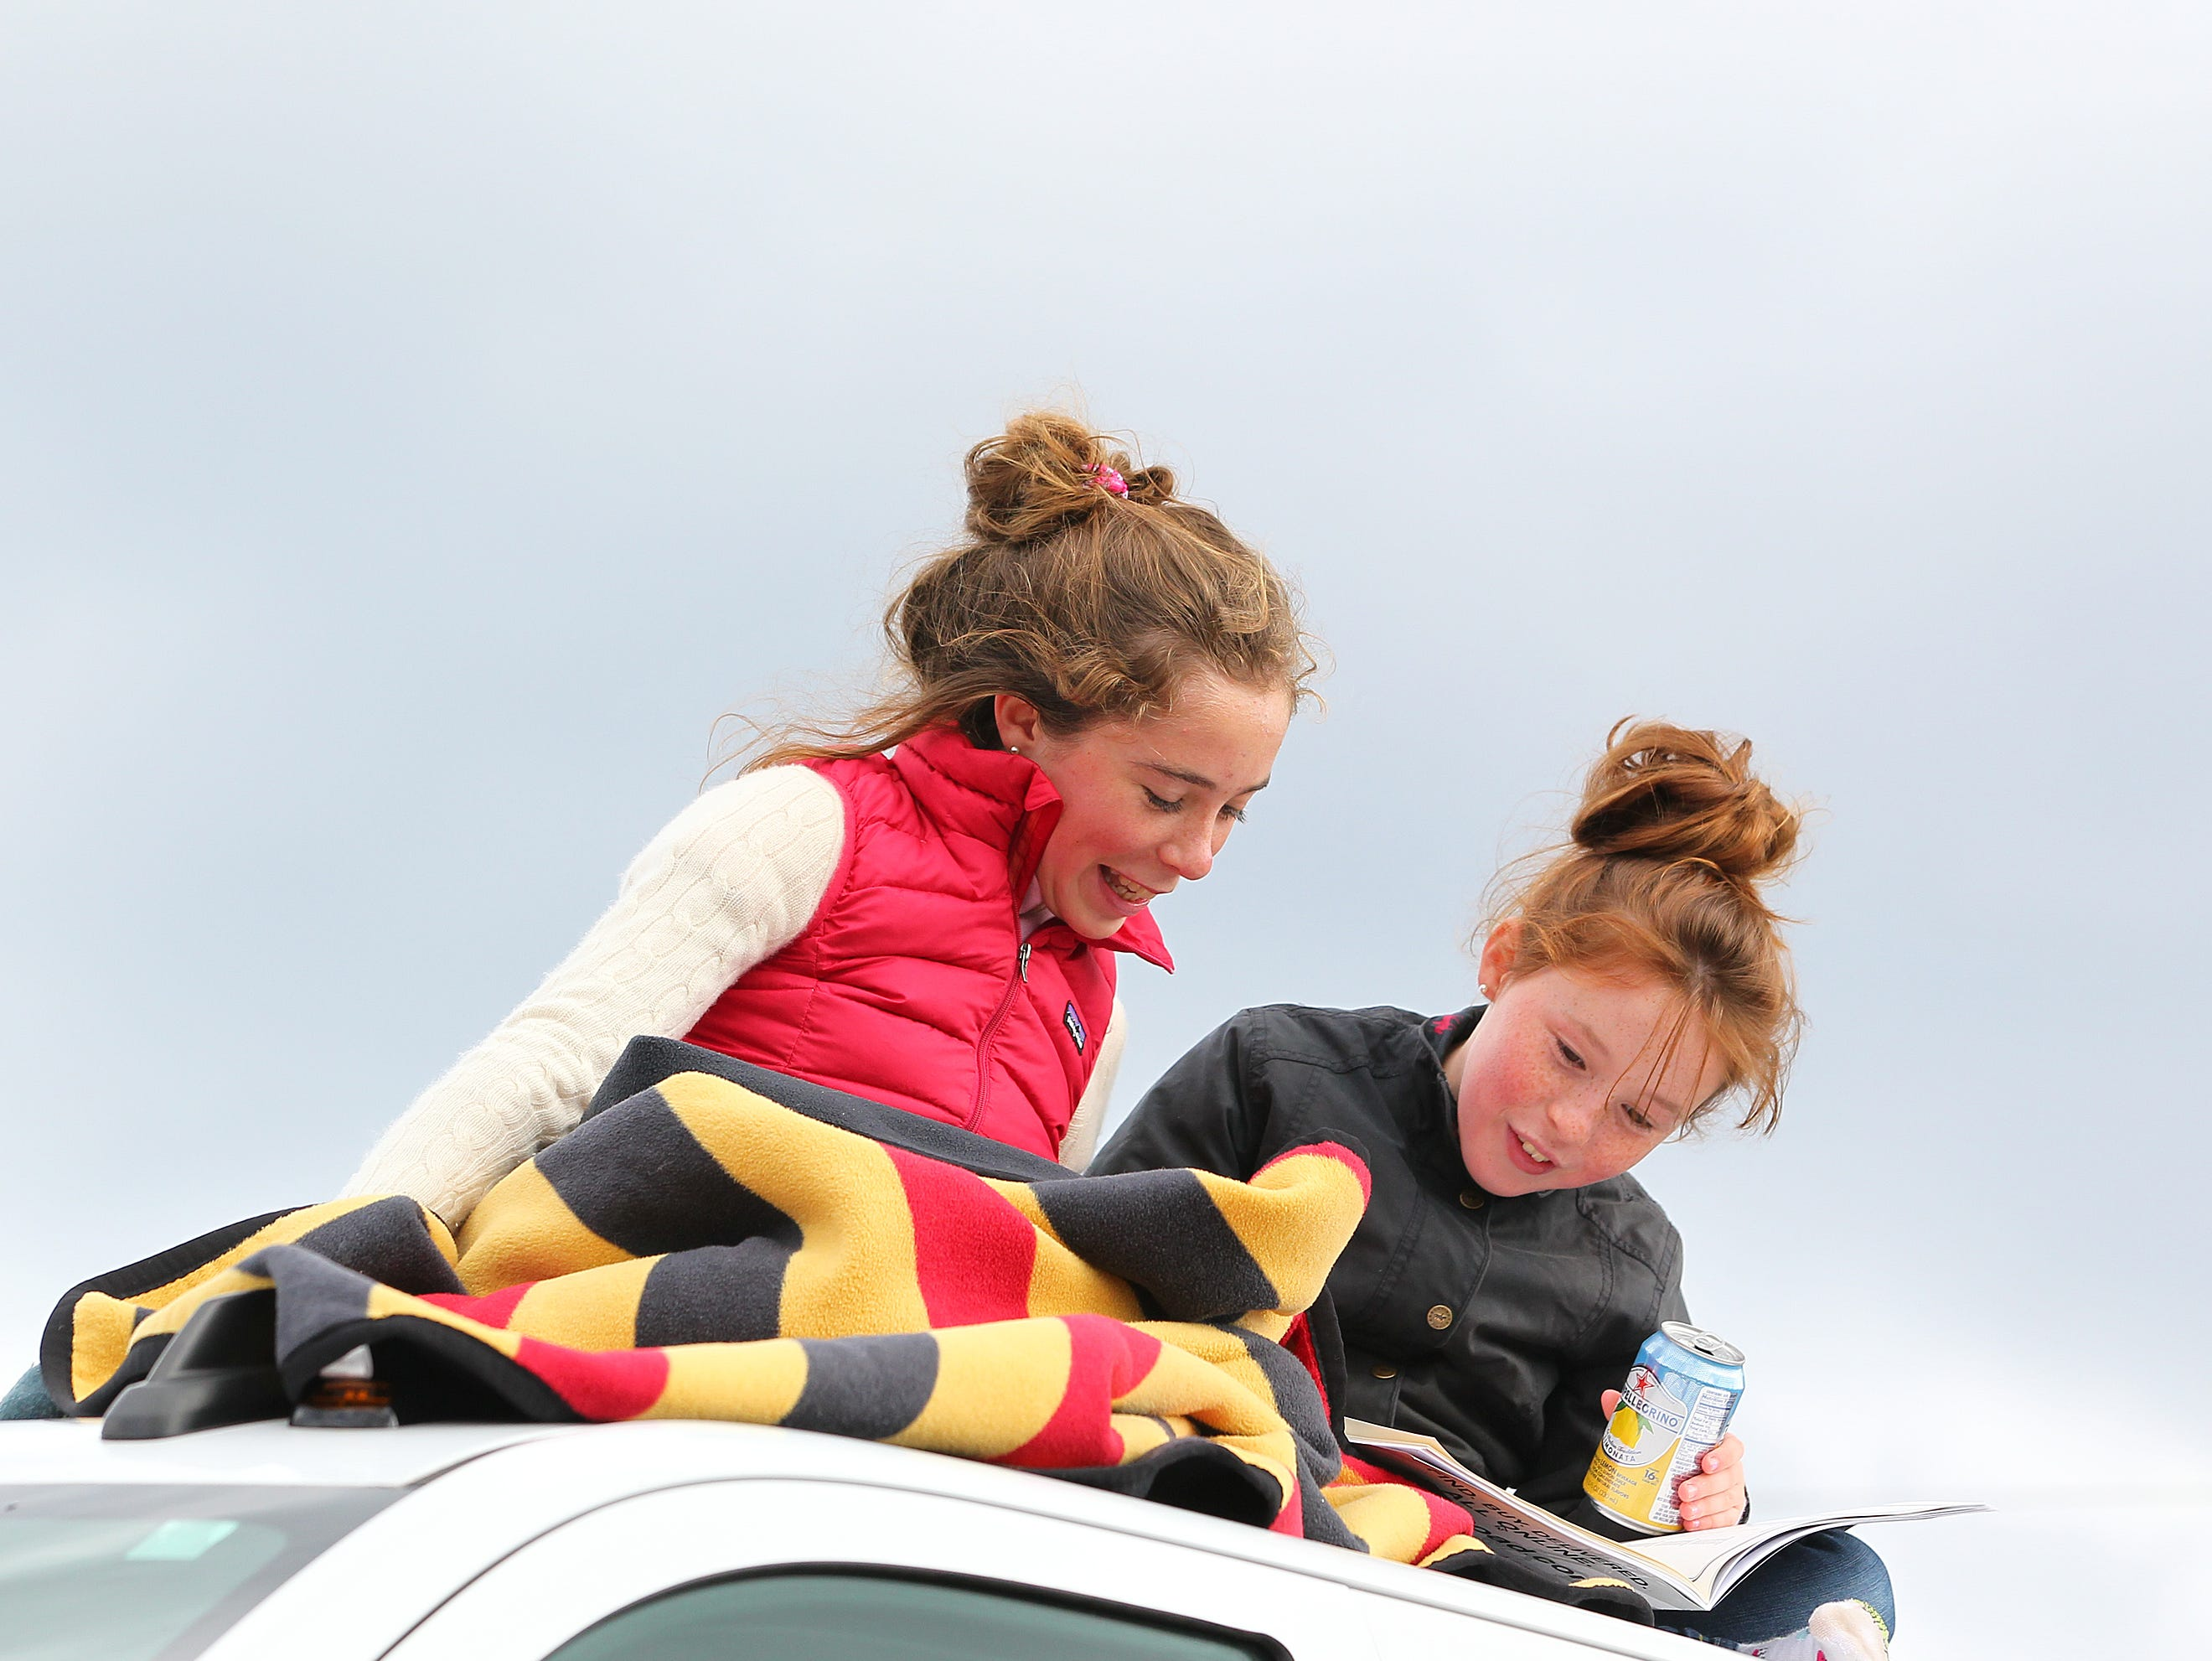 Emma, 13 and Gracie Sameth 10 of Far Hills stay warm on the roof of their family car during the 98th running of the Far Hills Race Meeting at Moorland Farm in Far Hills, N.J. on Saturday, Oct. 20, 2015. Photo by Rich Schultz/ HNT